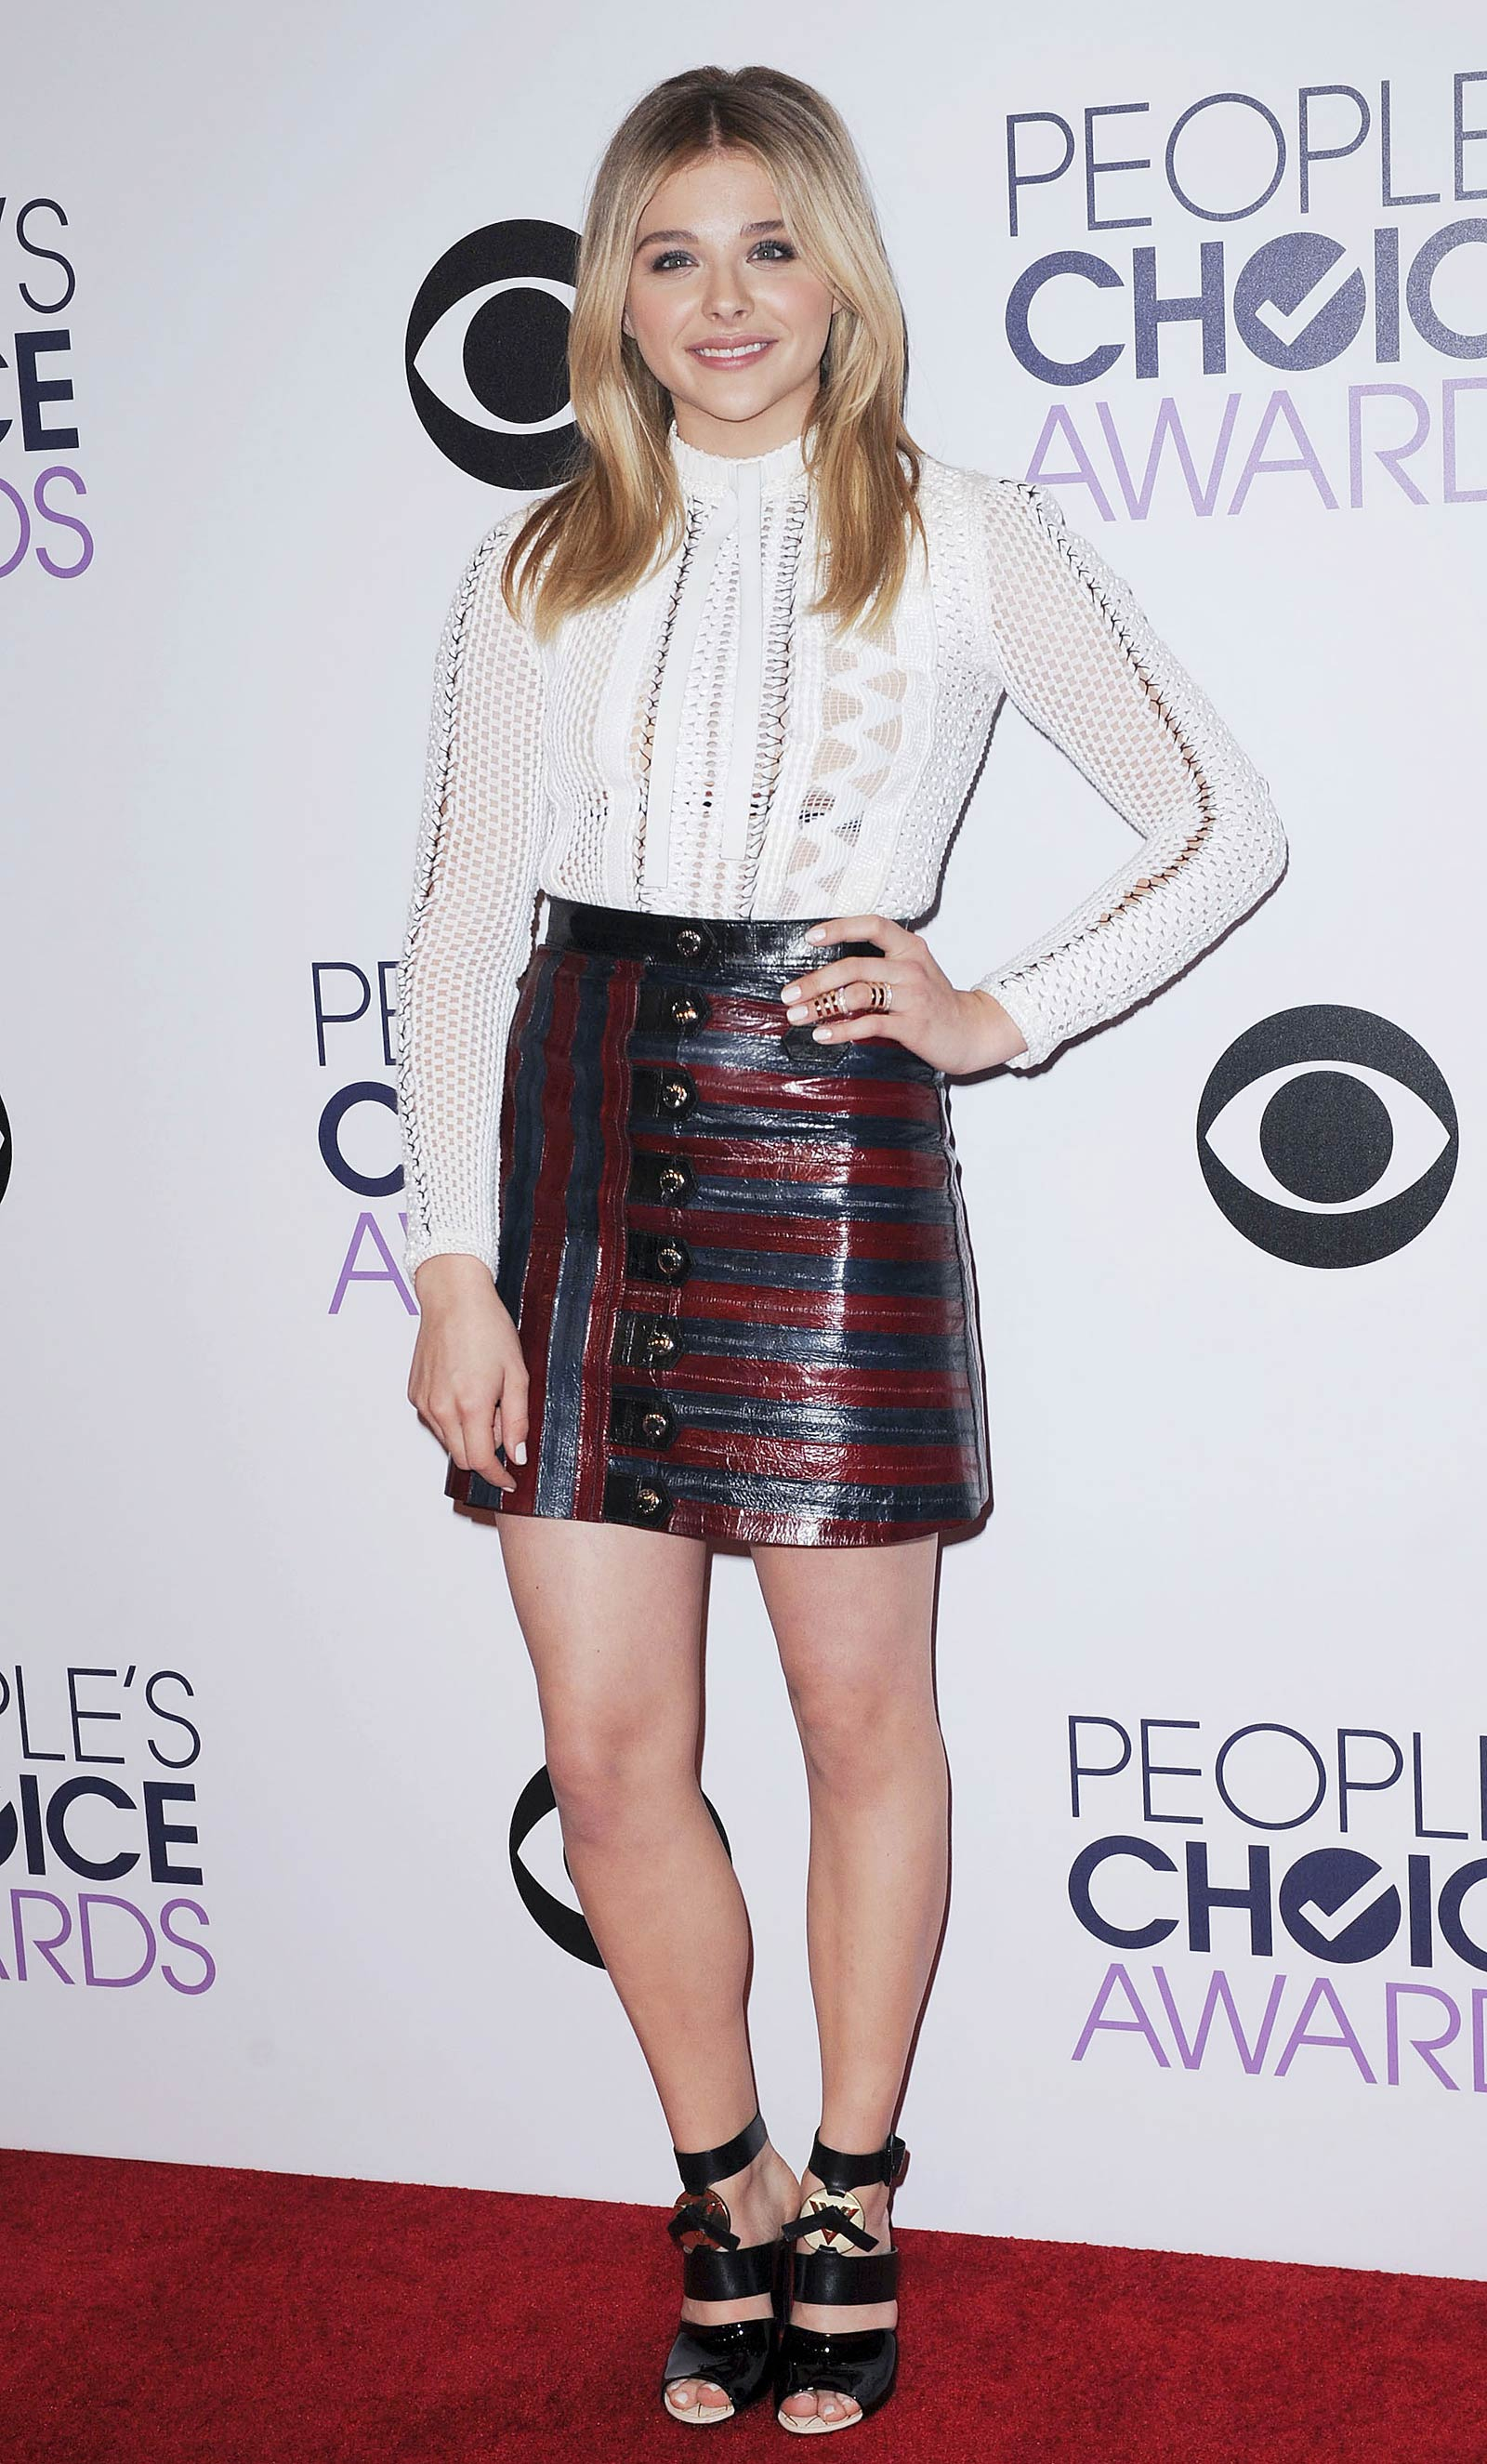 Chloe Moretz attends 2015 People's Choice Awards